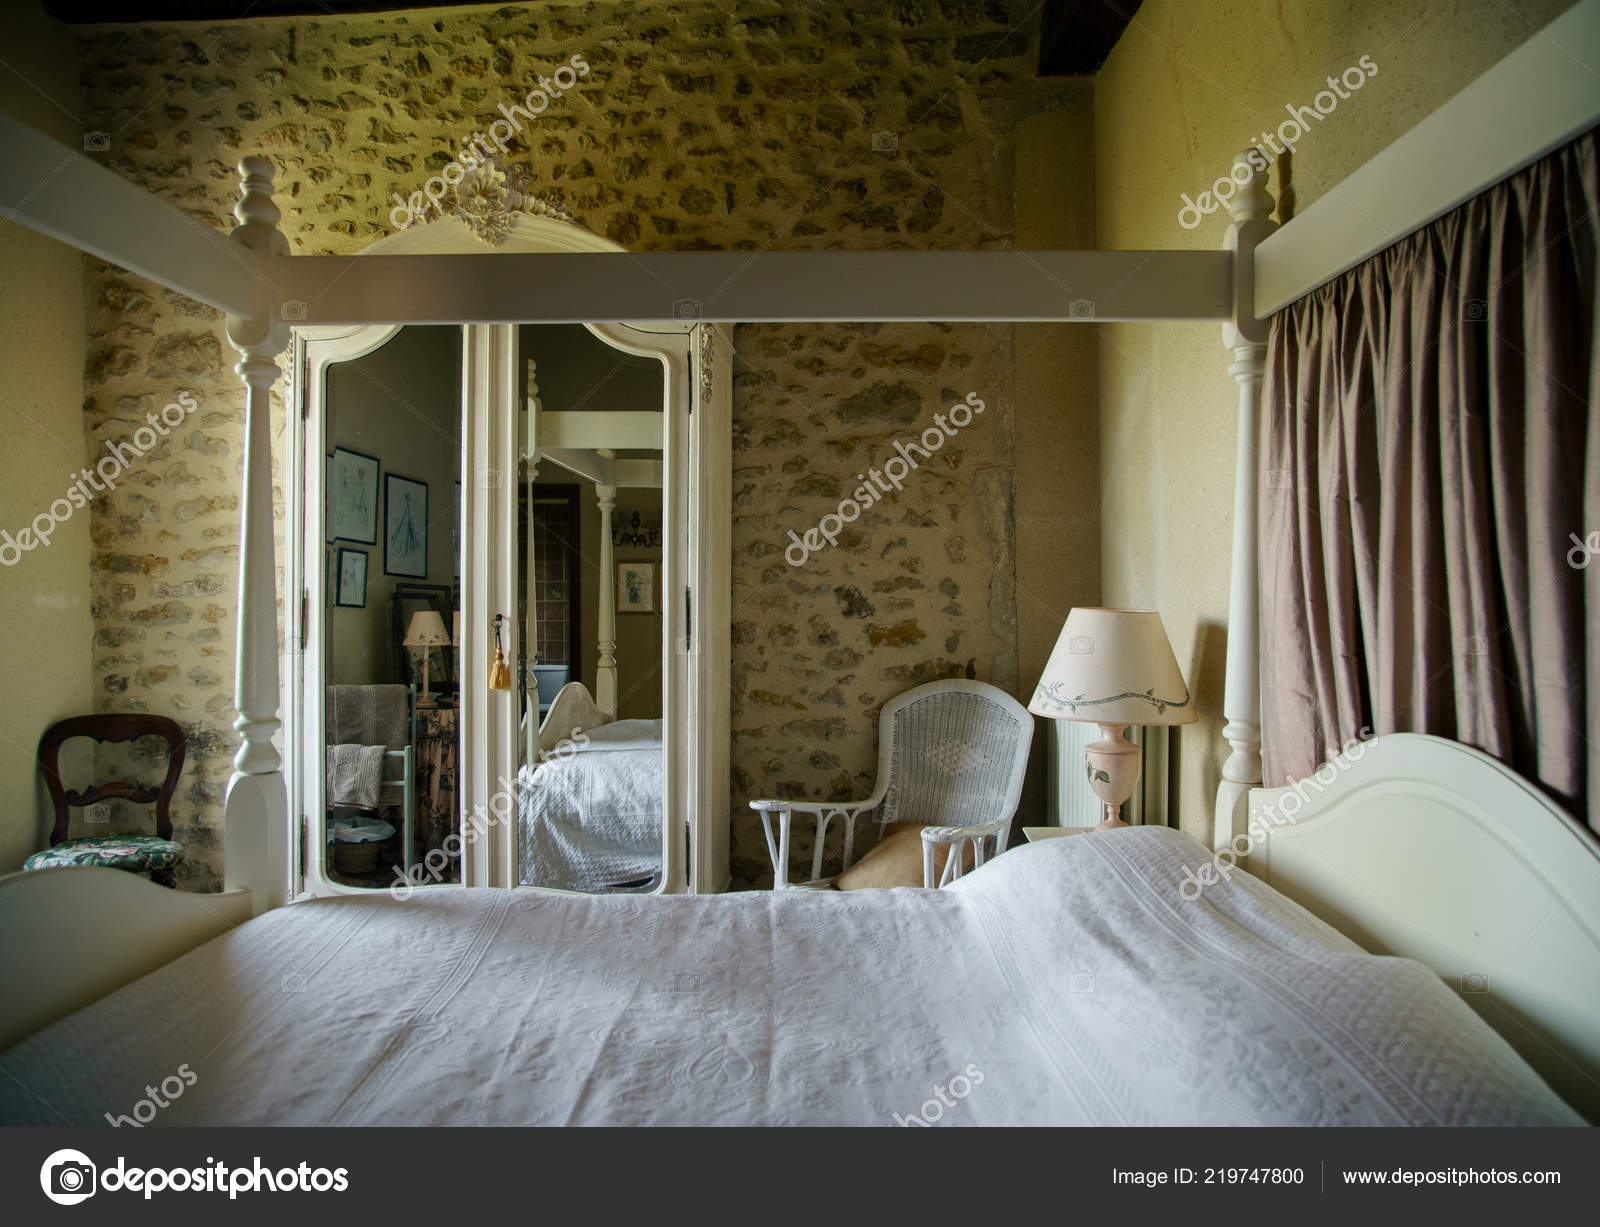 Vintage paris themed bedroom | Poitiers France August 2018 ...